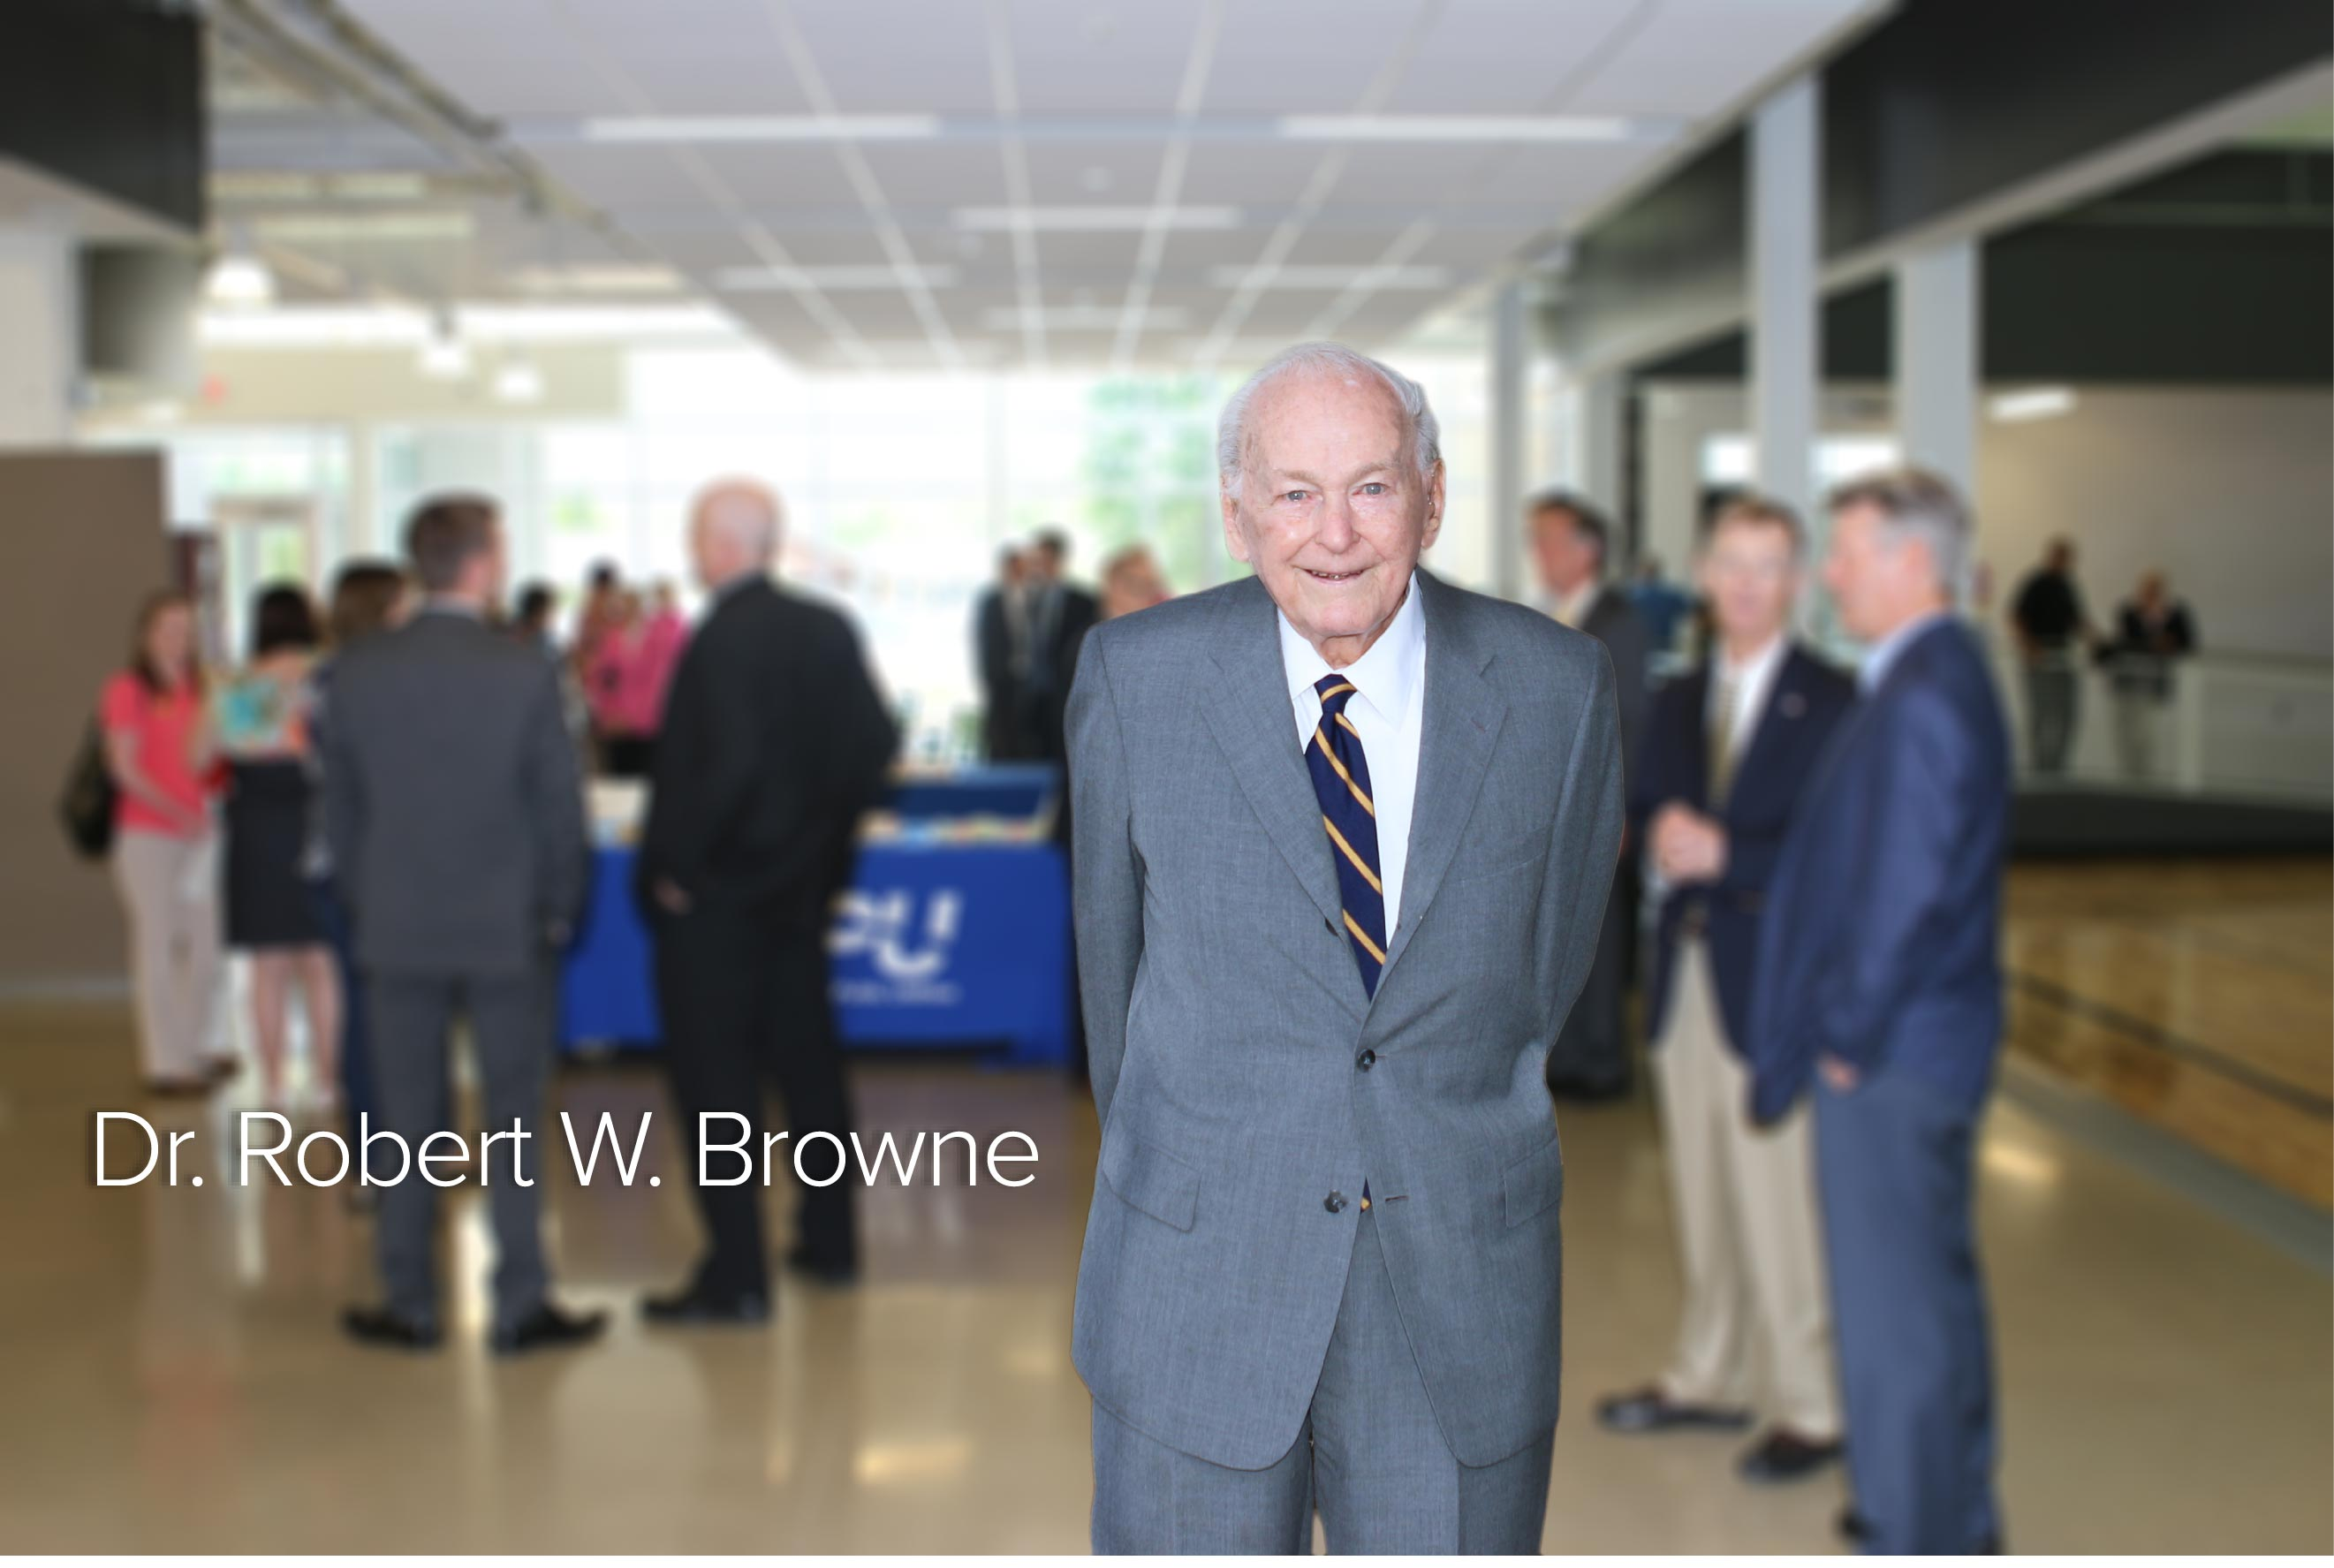 Robert W. Browne posing for a picture with people in the background